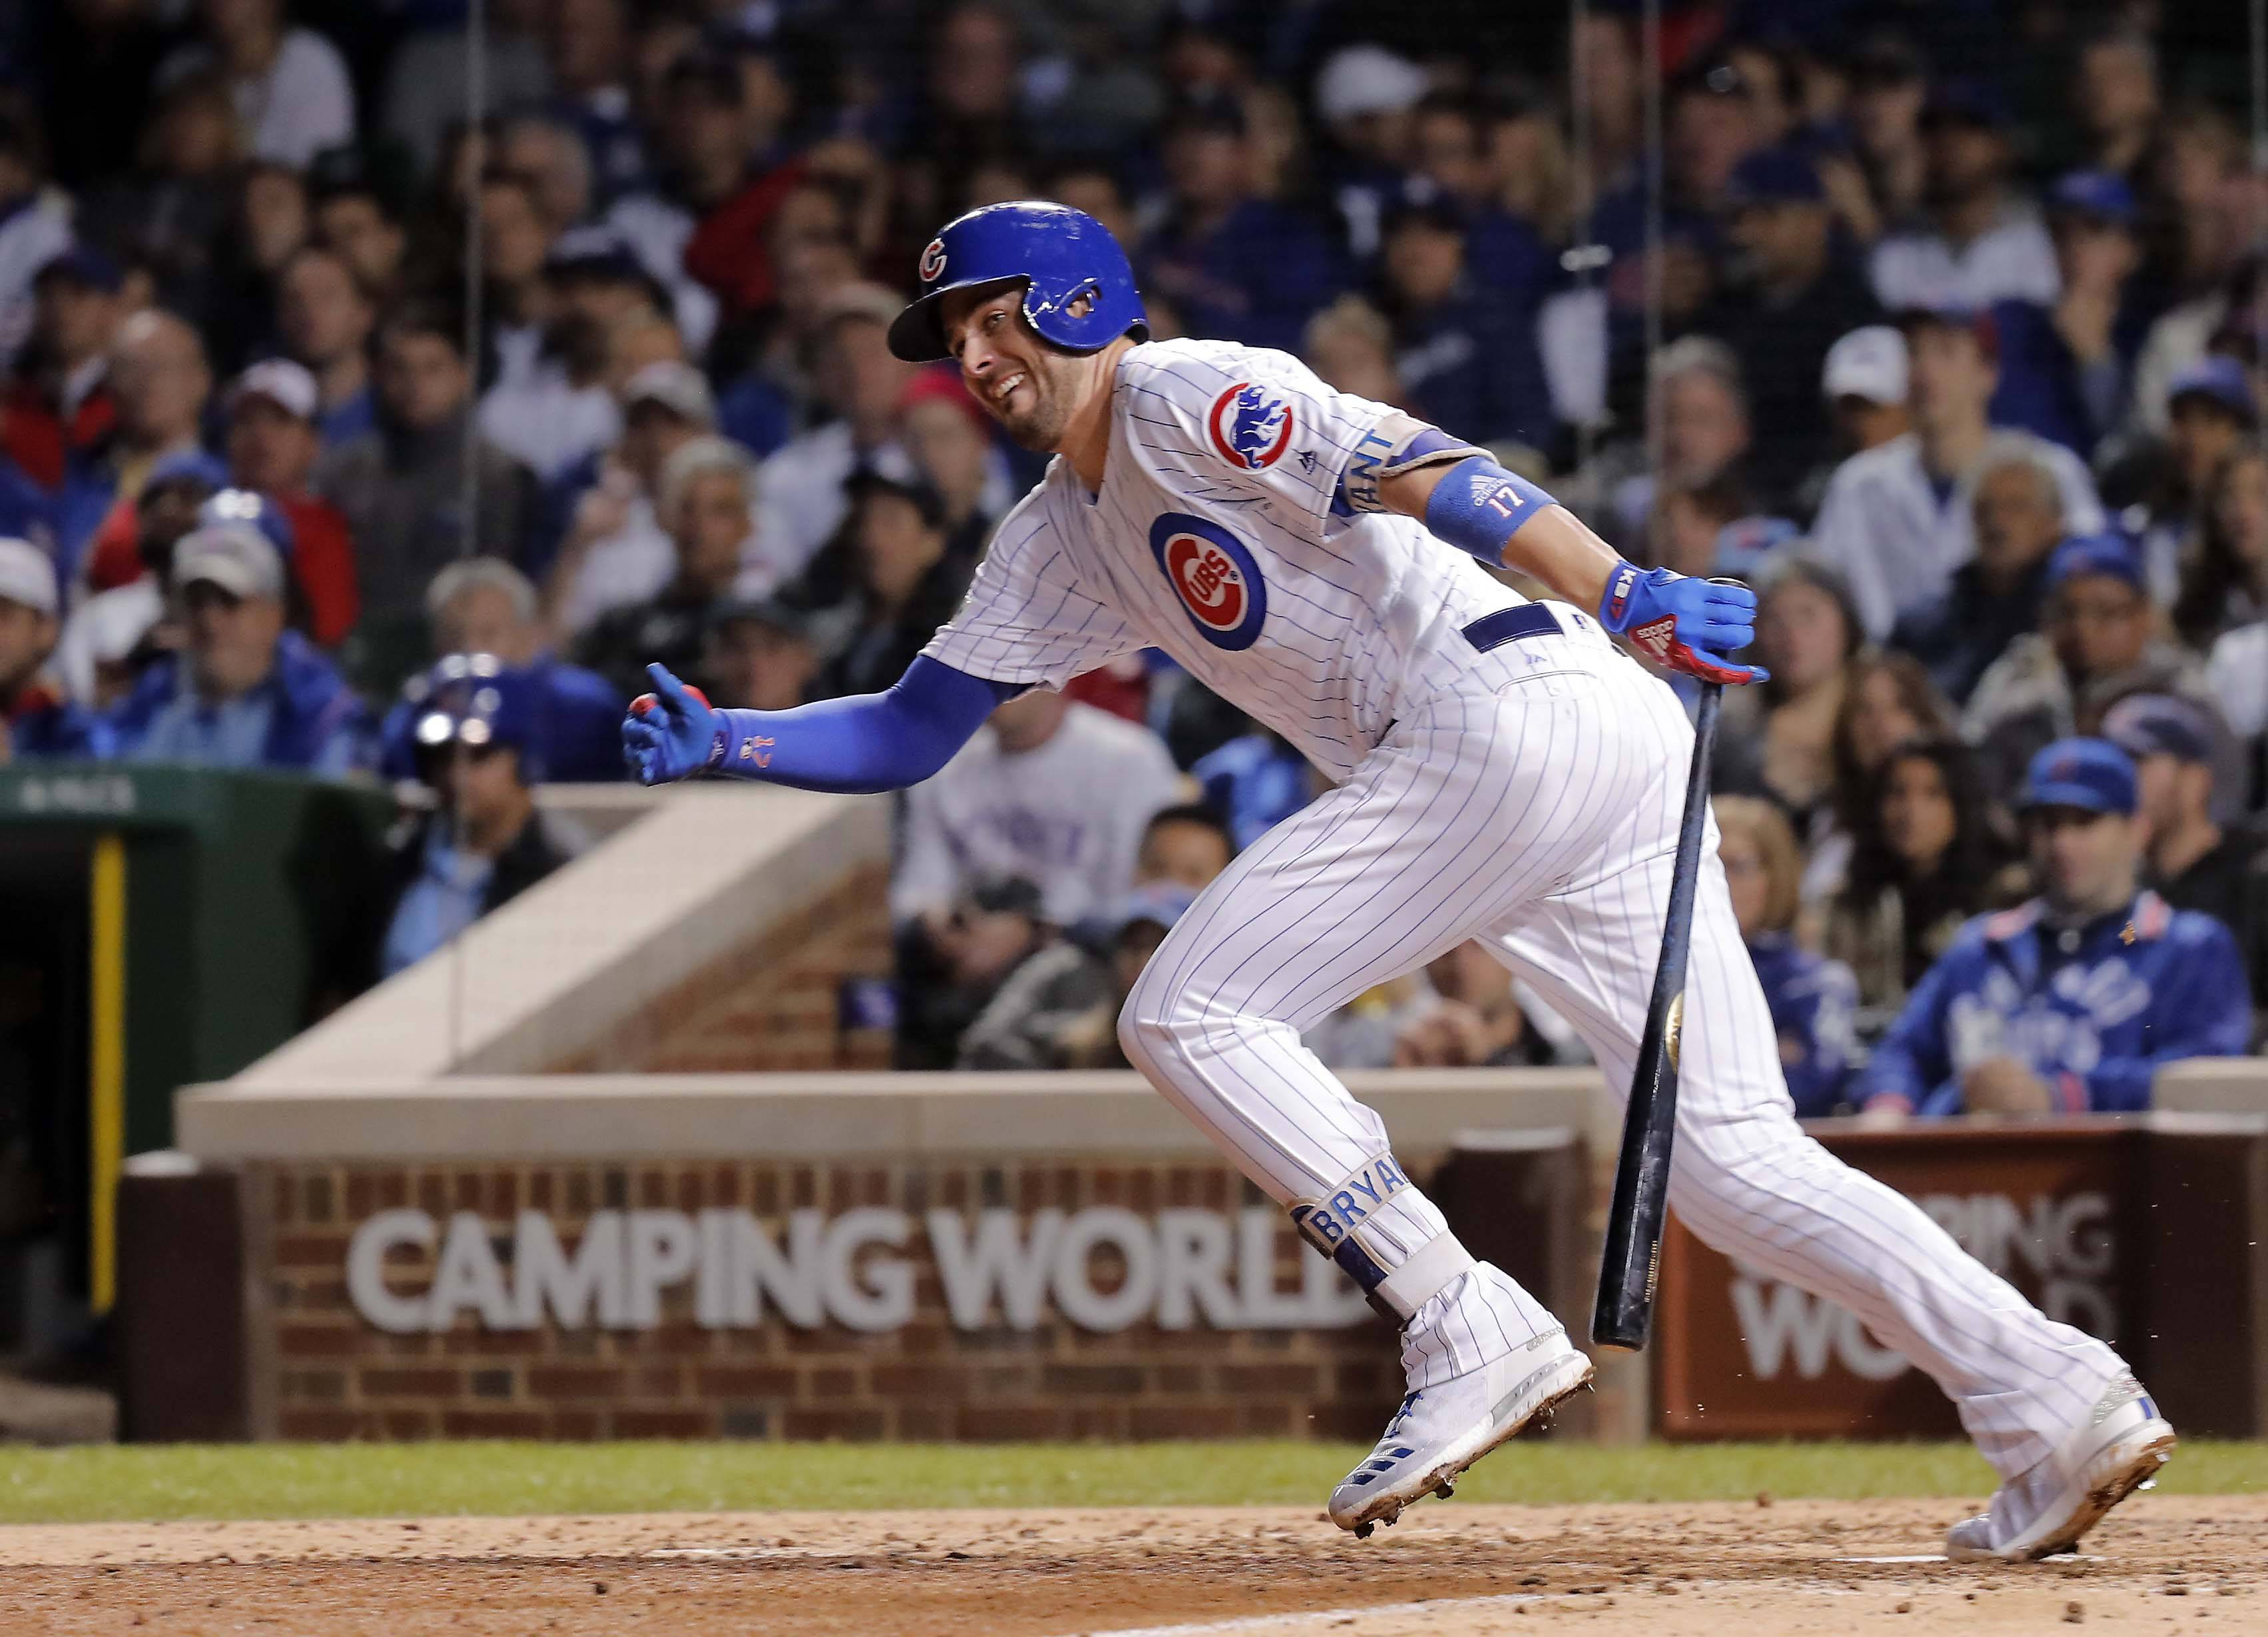 Chicago Cubs third baseman Kris Bryant had career highs in batting average and on-base percentage last season.